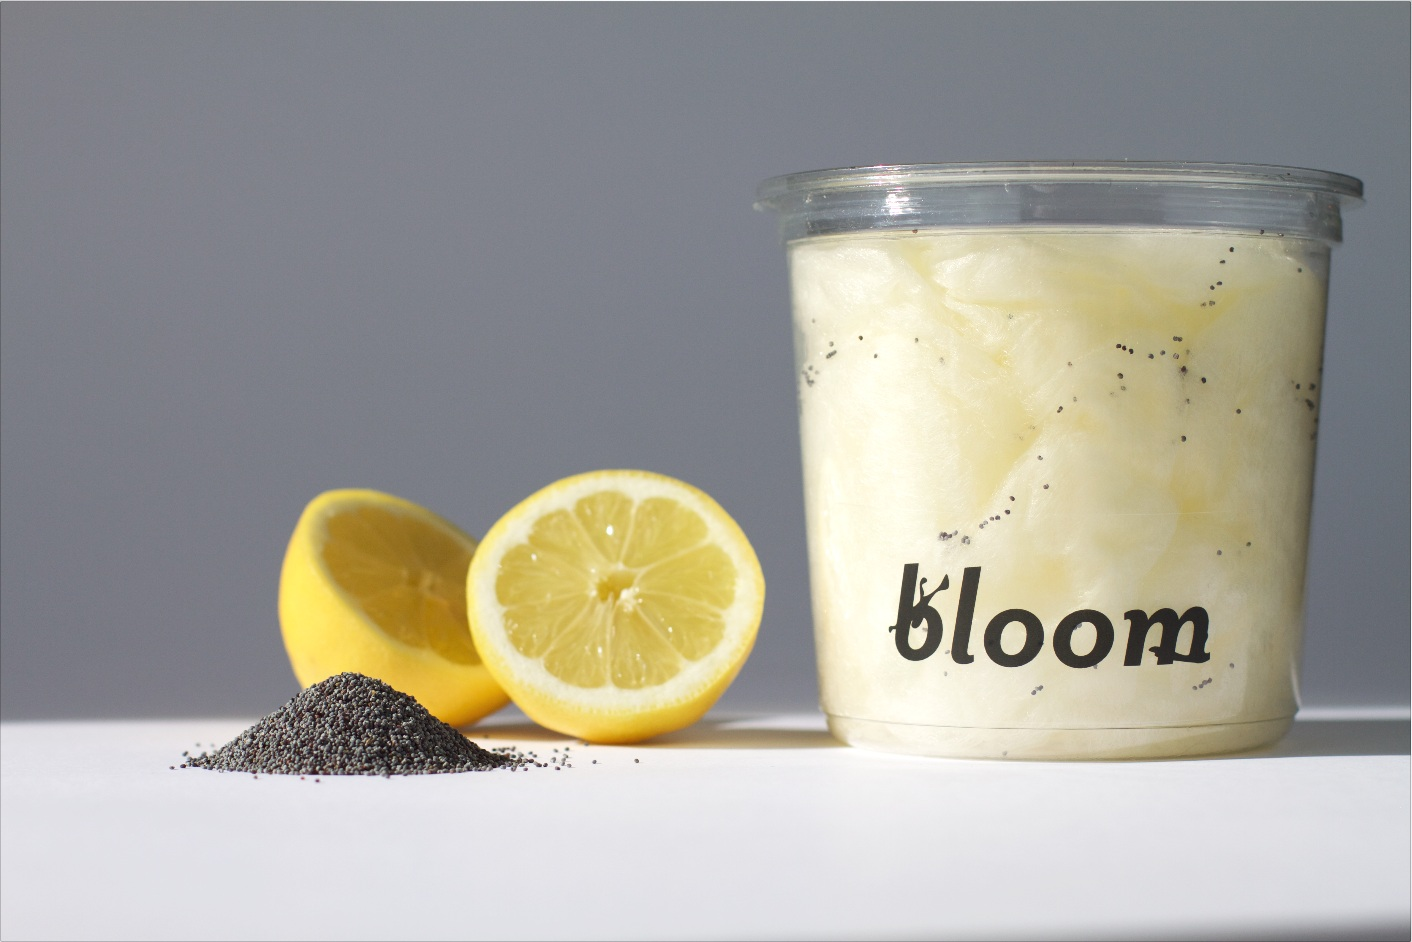 bloom_candyfloss_lemon_poppy_seeds_organic_ingredients_our_product_picture_number_2.png